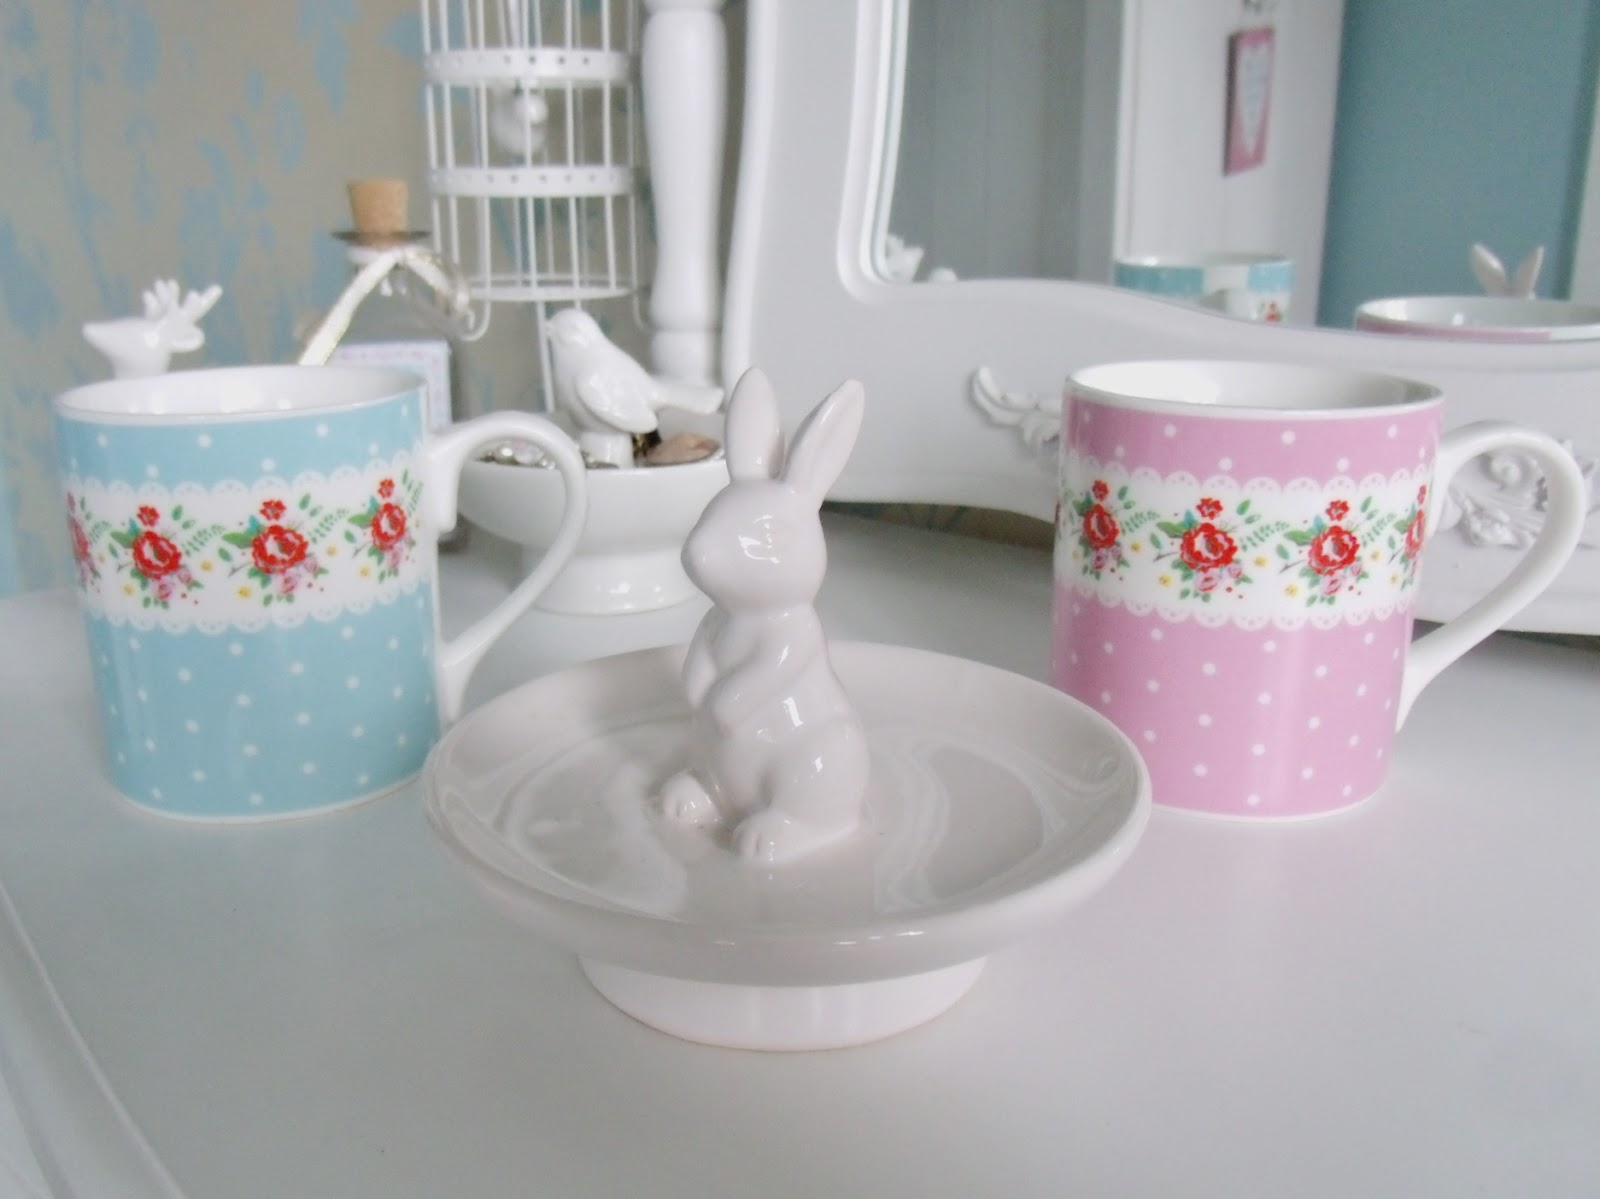 Home bargains bathroom cabinets - Here S What I Ve Bought Lately From My Favourite Cheap Shops Home Bargains B M Poundland